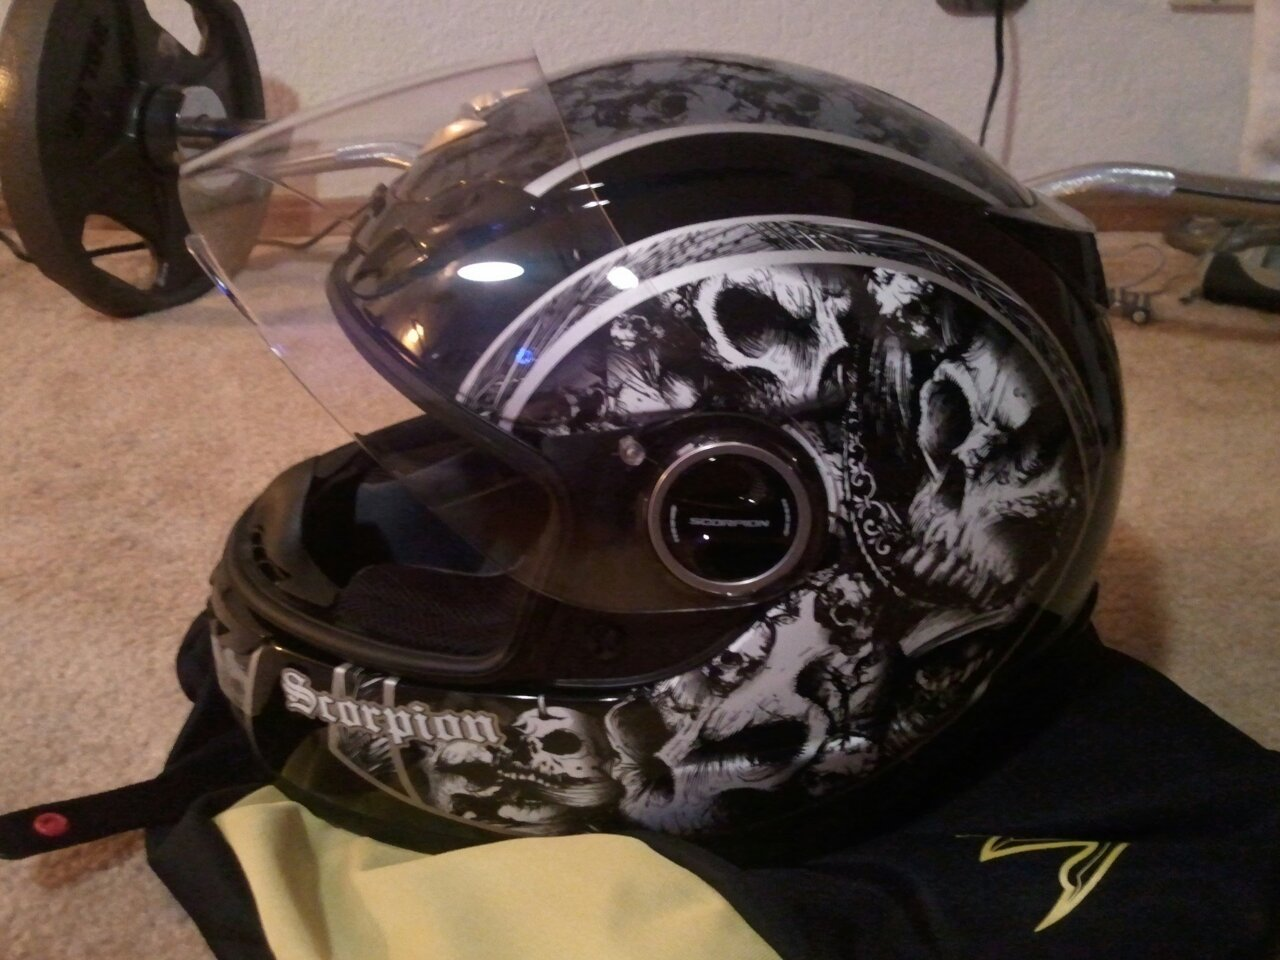 buying a new helmet! need your opinion!-uploadfromtaptalk1357173822080.jpg